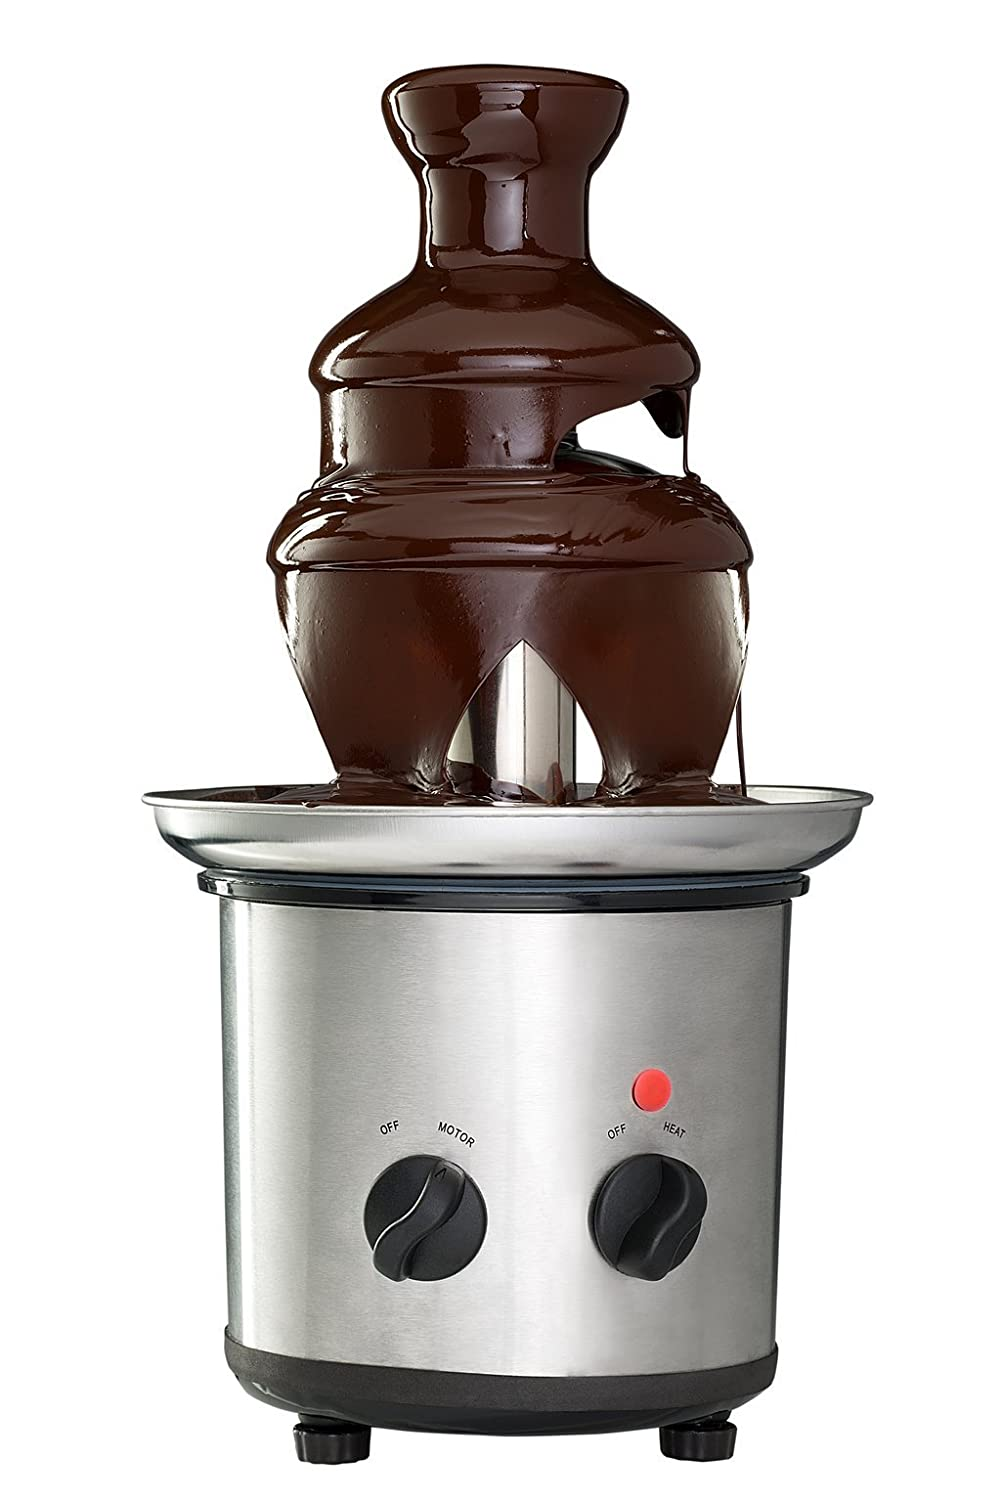 Sagler 3 Tier Chocolate Fountain machine Stainless Steel